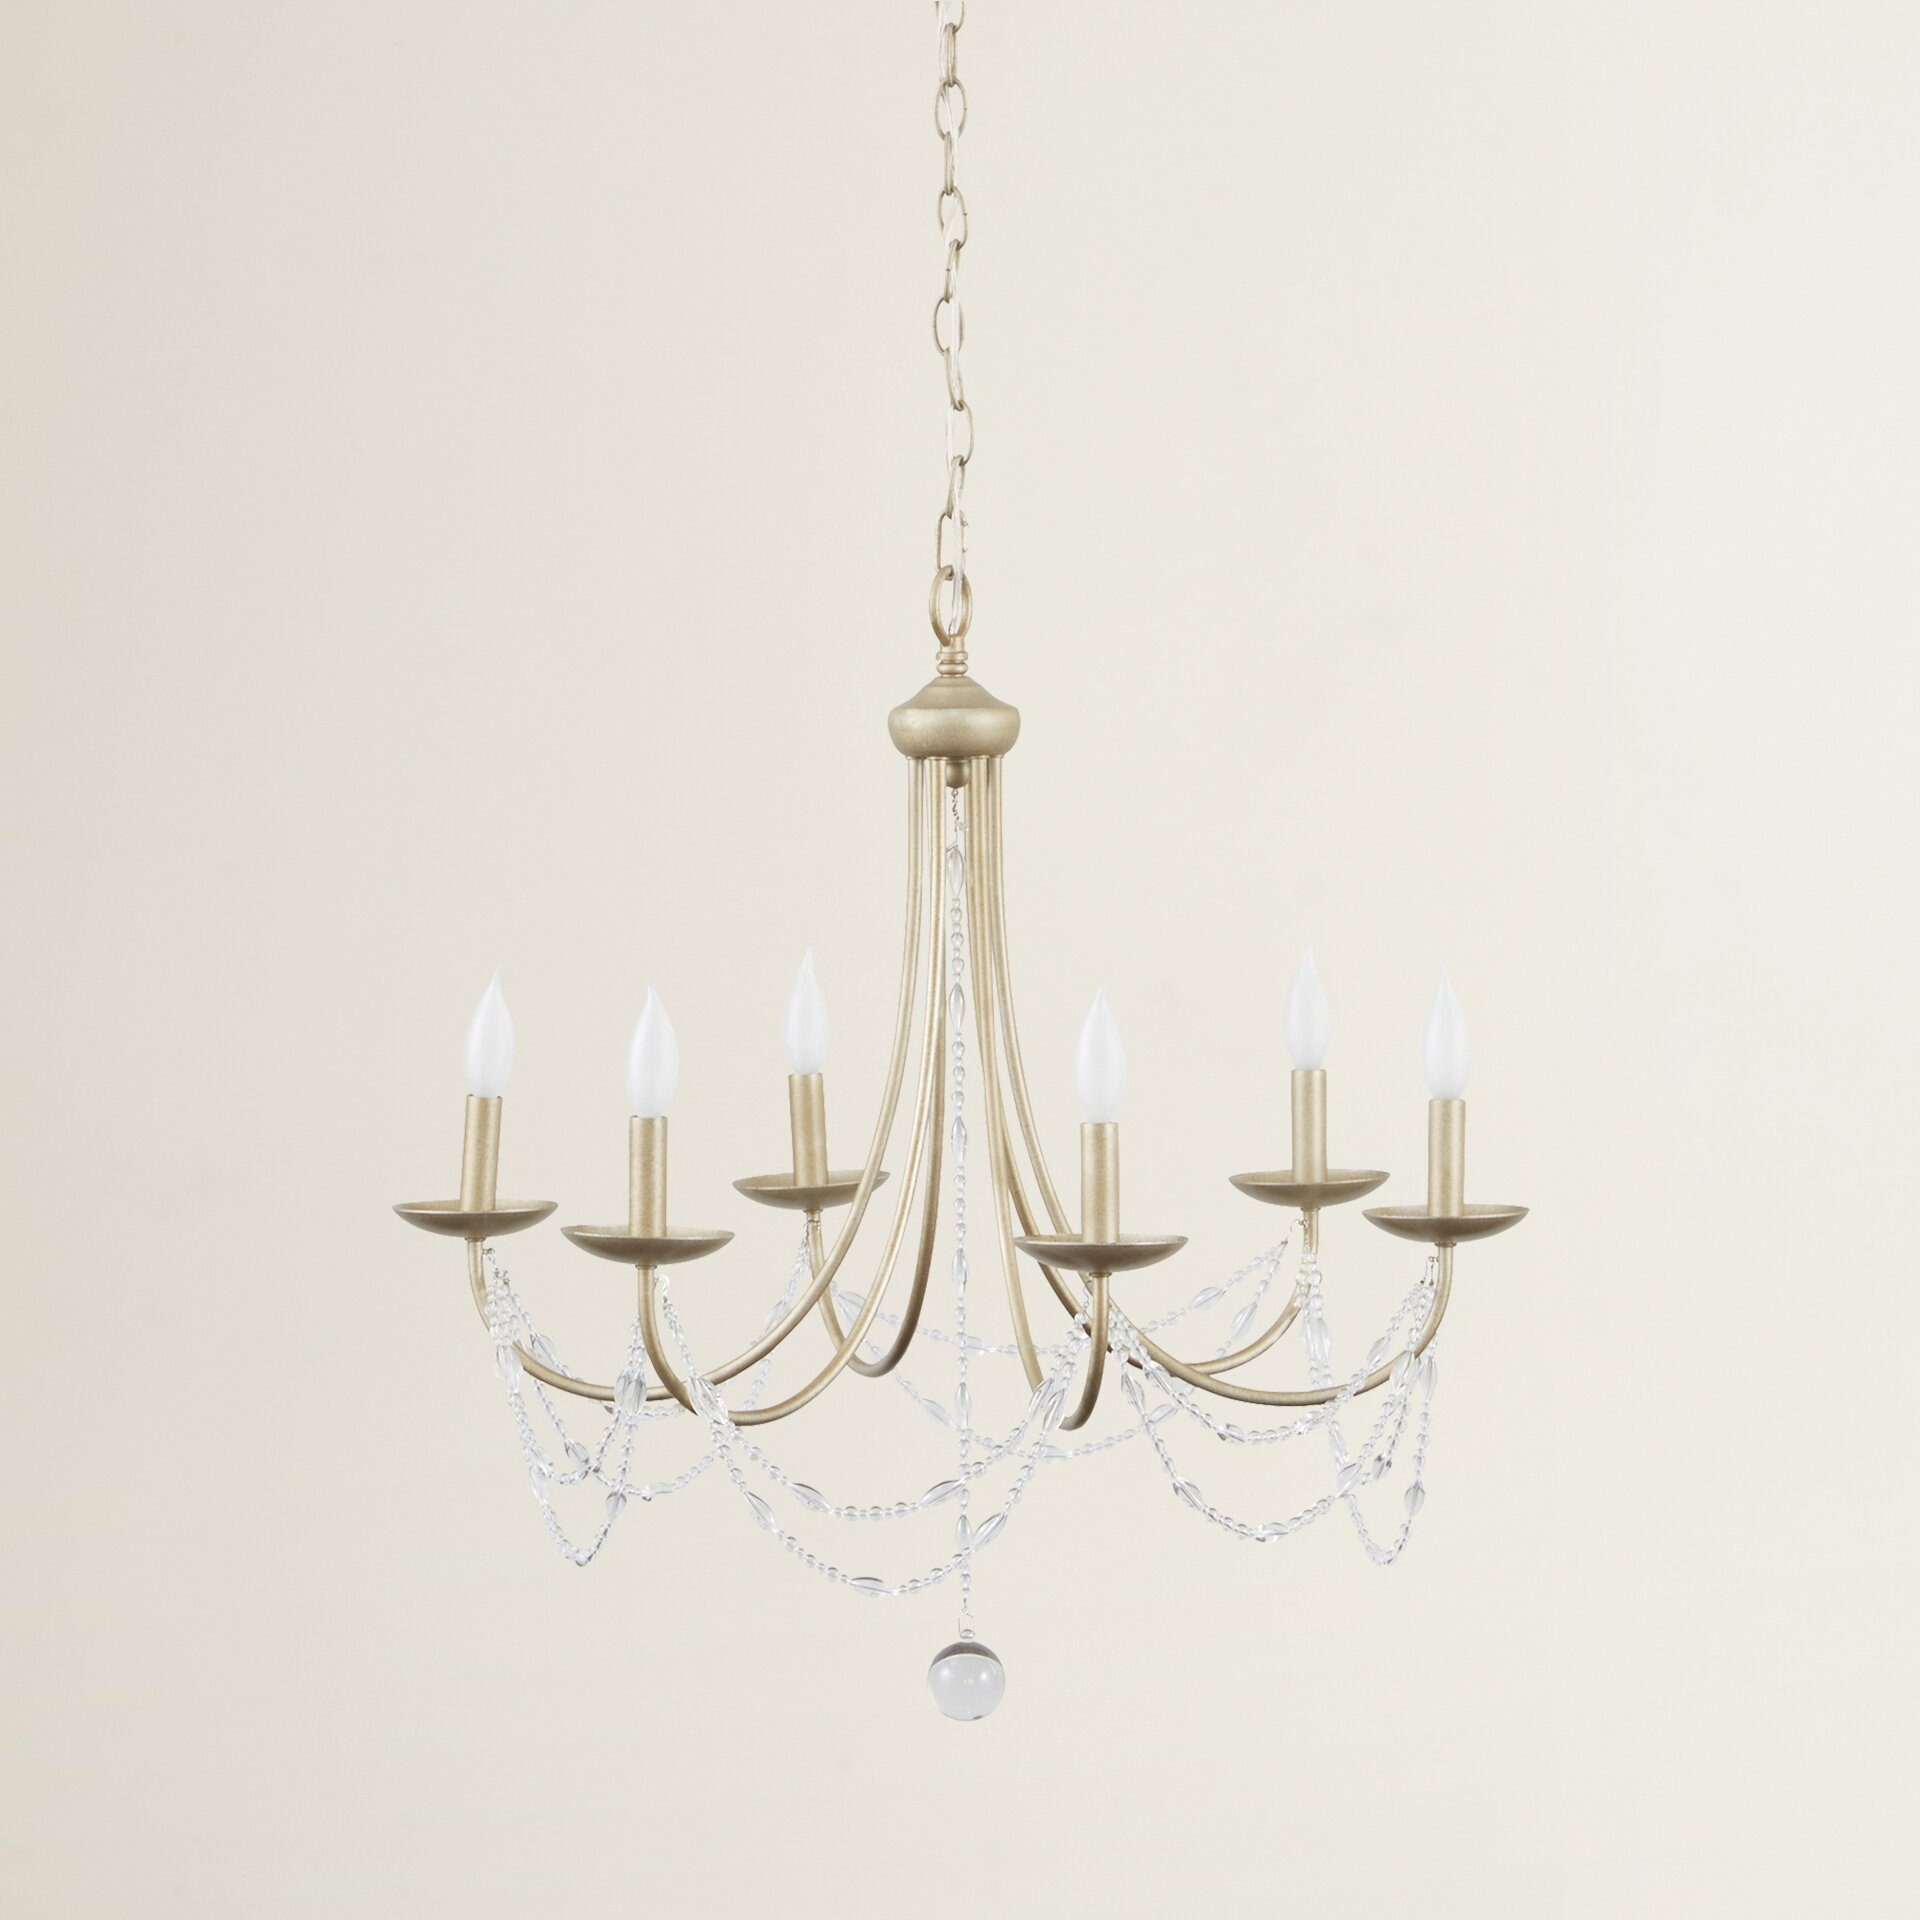 Wayfair Chandelier: Three Posts Atwood 6 Light Chandelier & Reviews